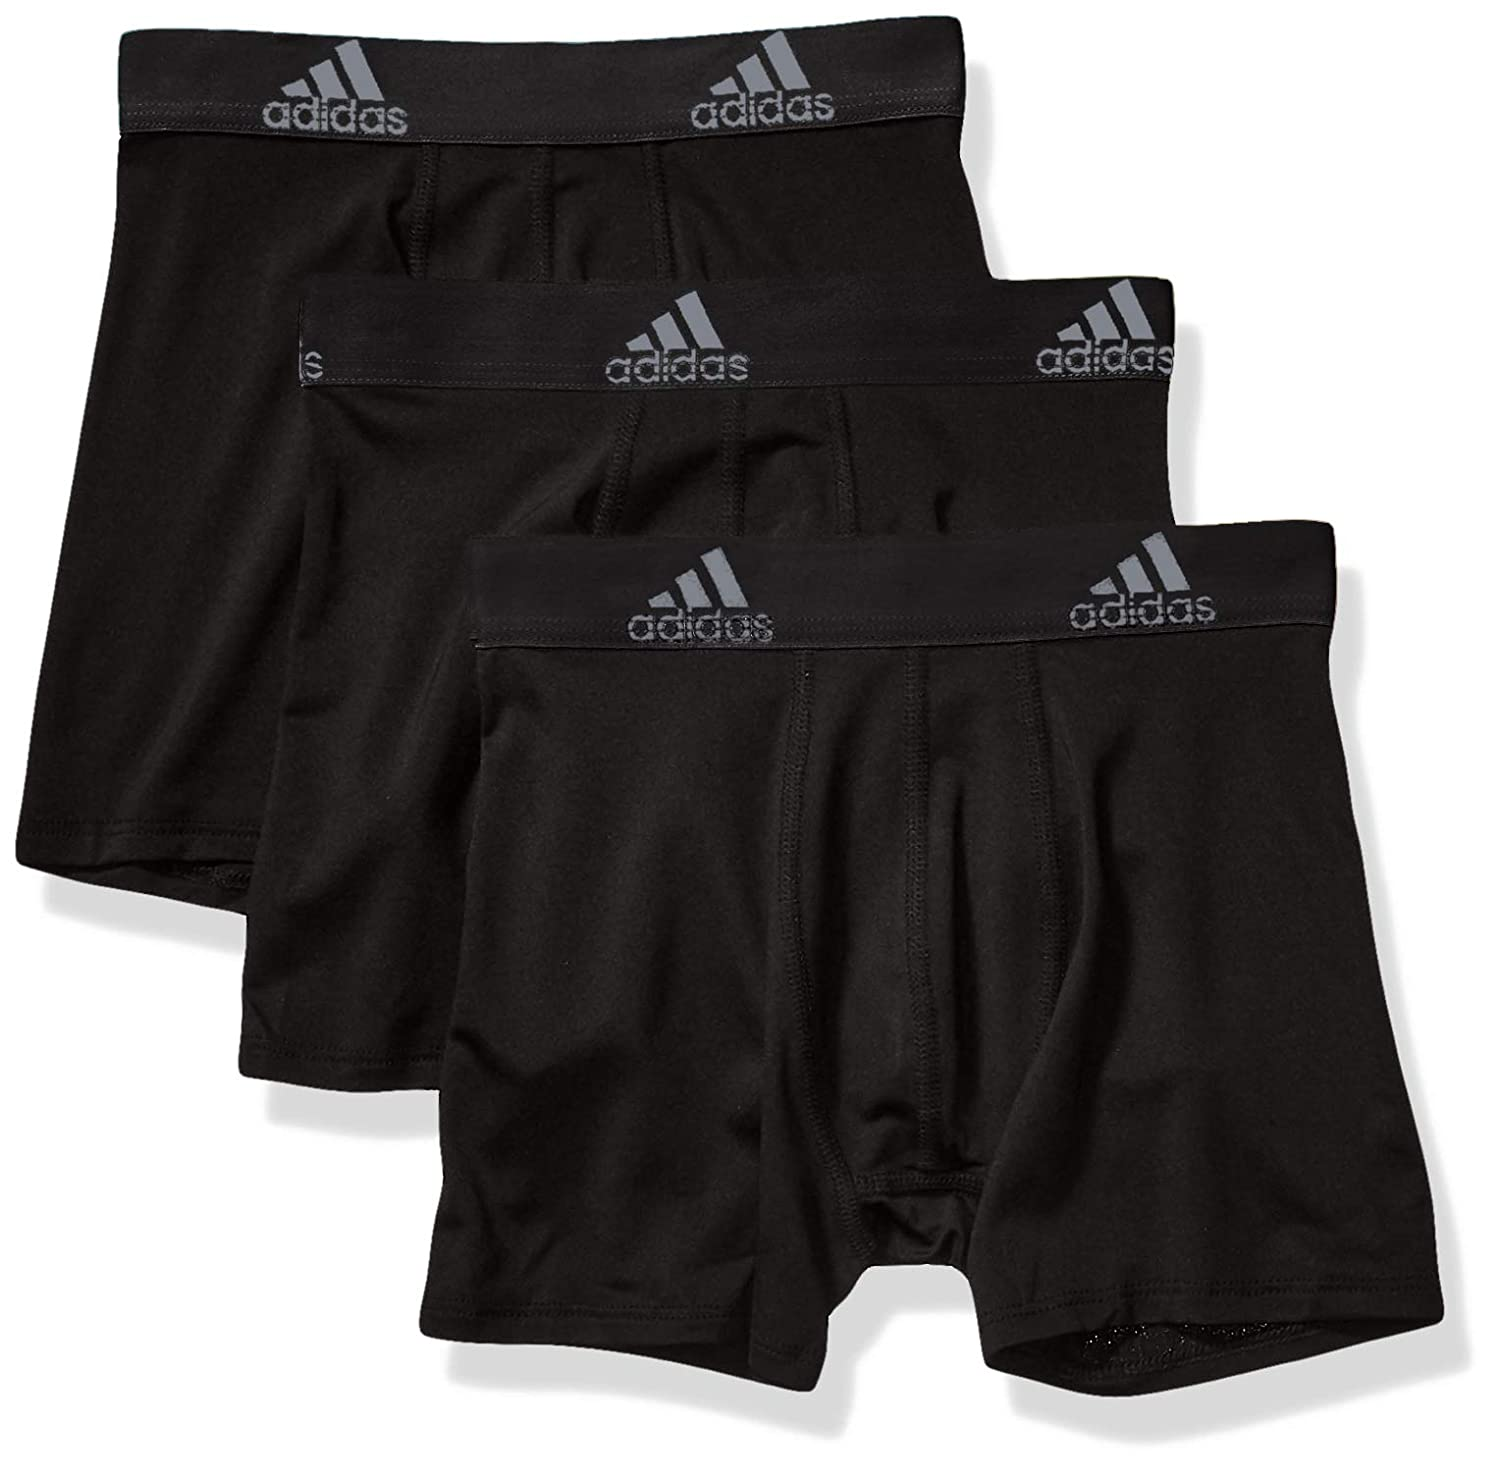 4d48aaeaad Amazon.com: adidas Sport Performance Climalite Boxer Briefs Underwear (3-Pack):  Clothing